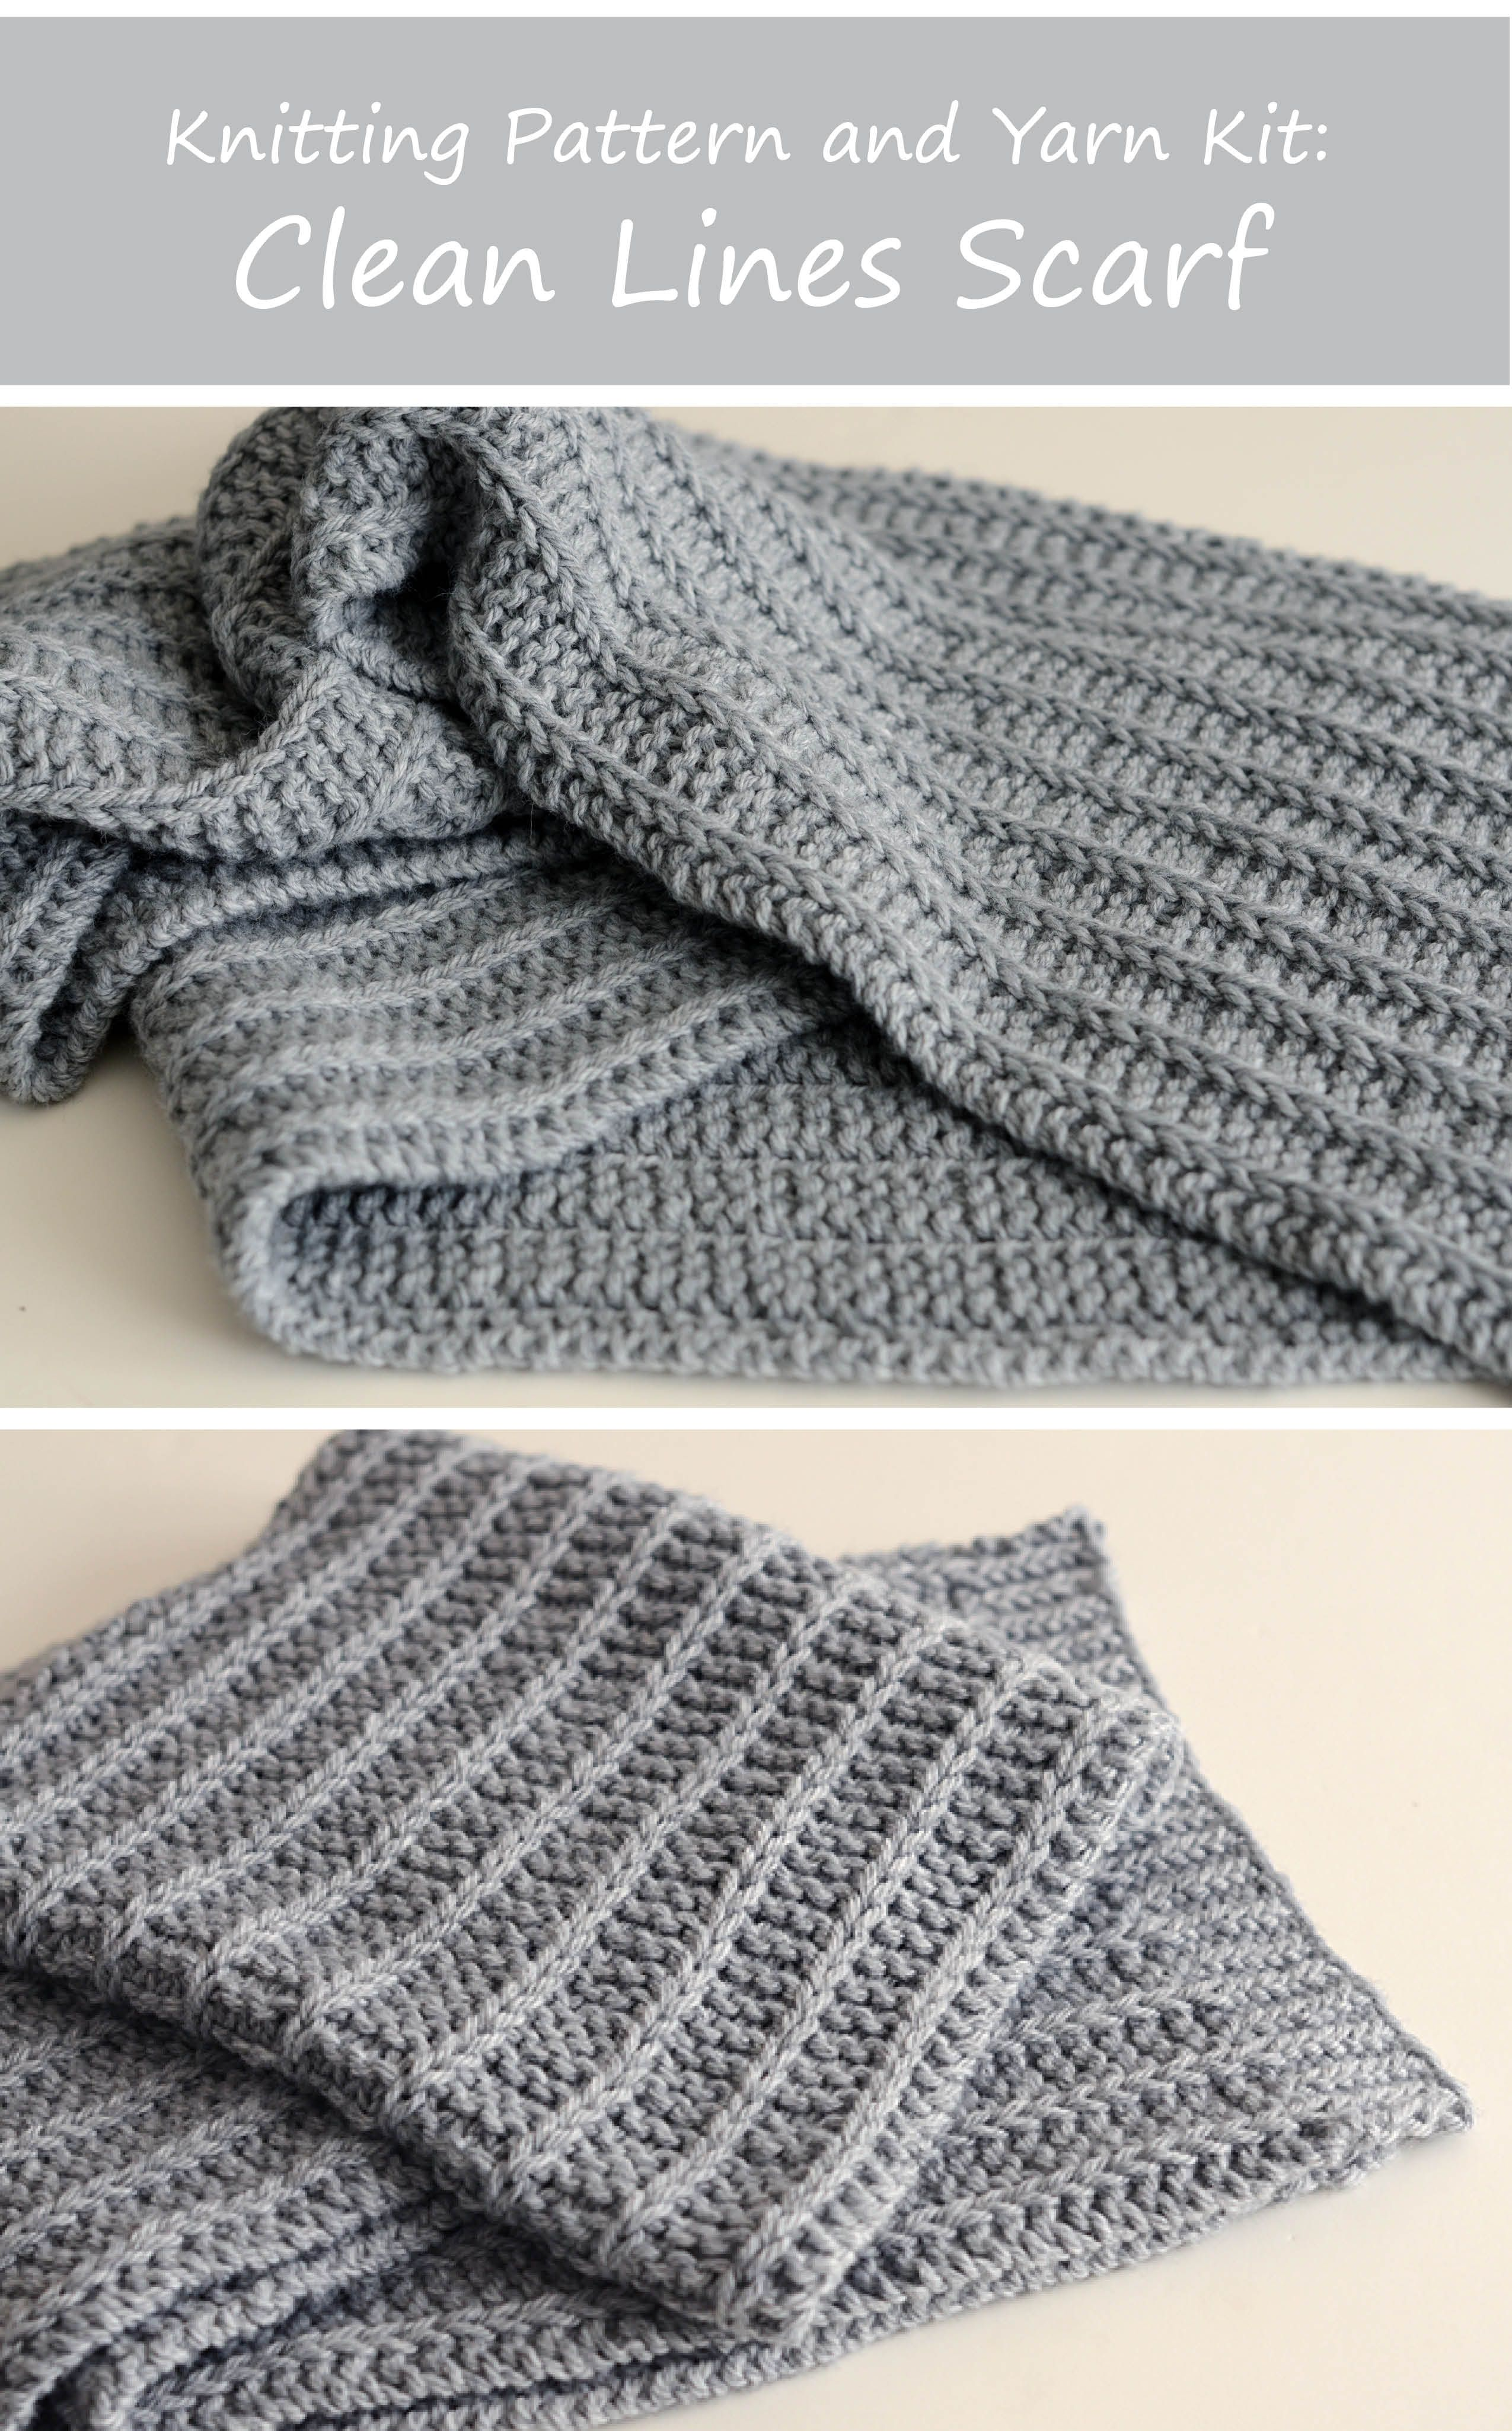 10 Kitchen And Home Decor Items Every 20 Something Needs: Kit - Clean Lines Scarf In Berroco Vintage